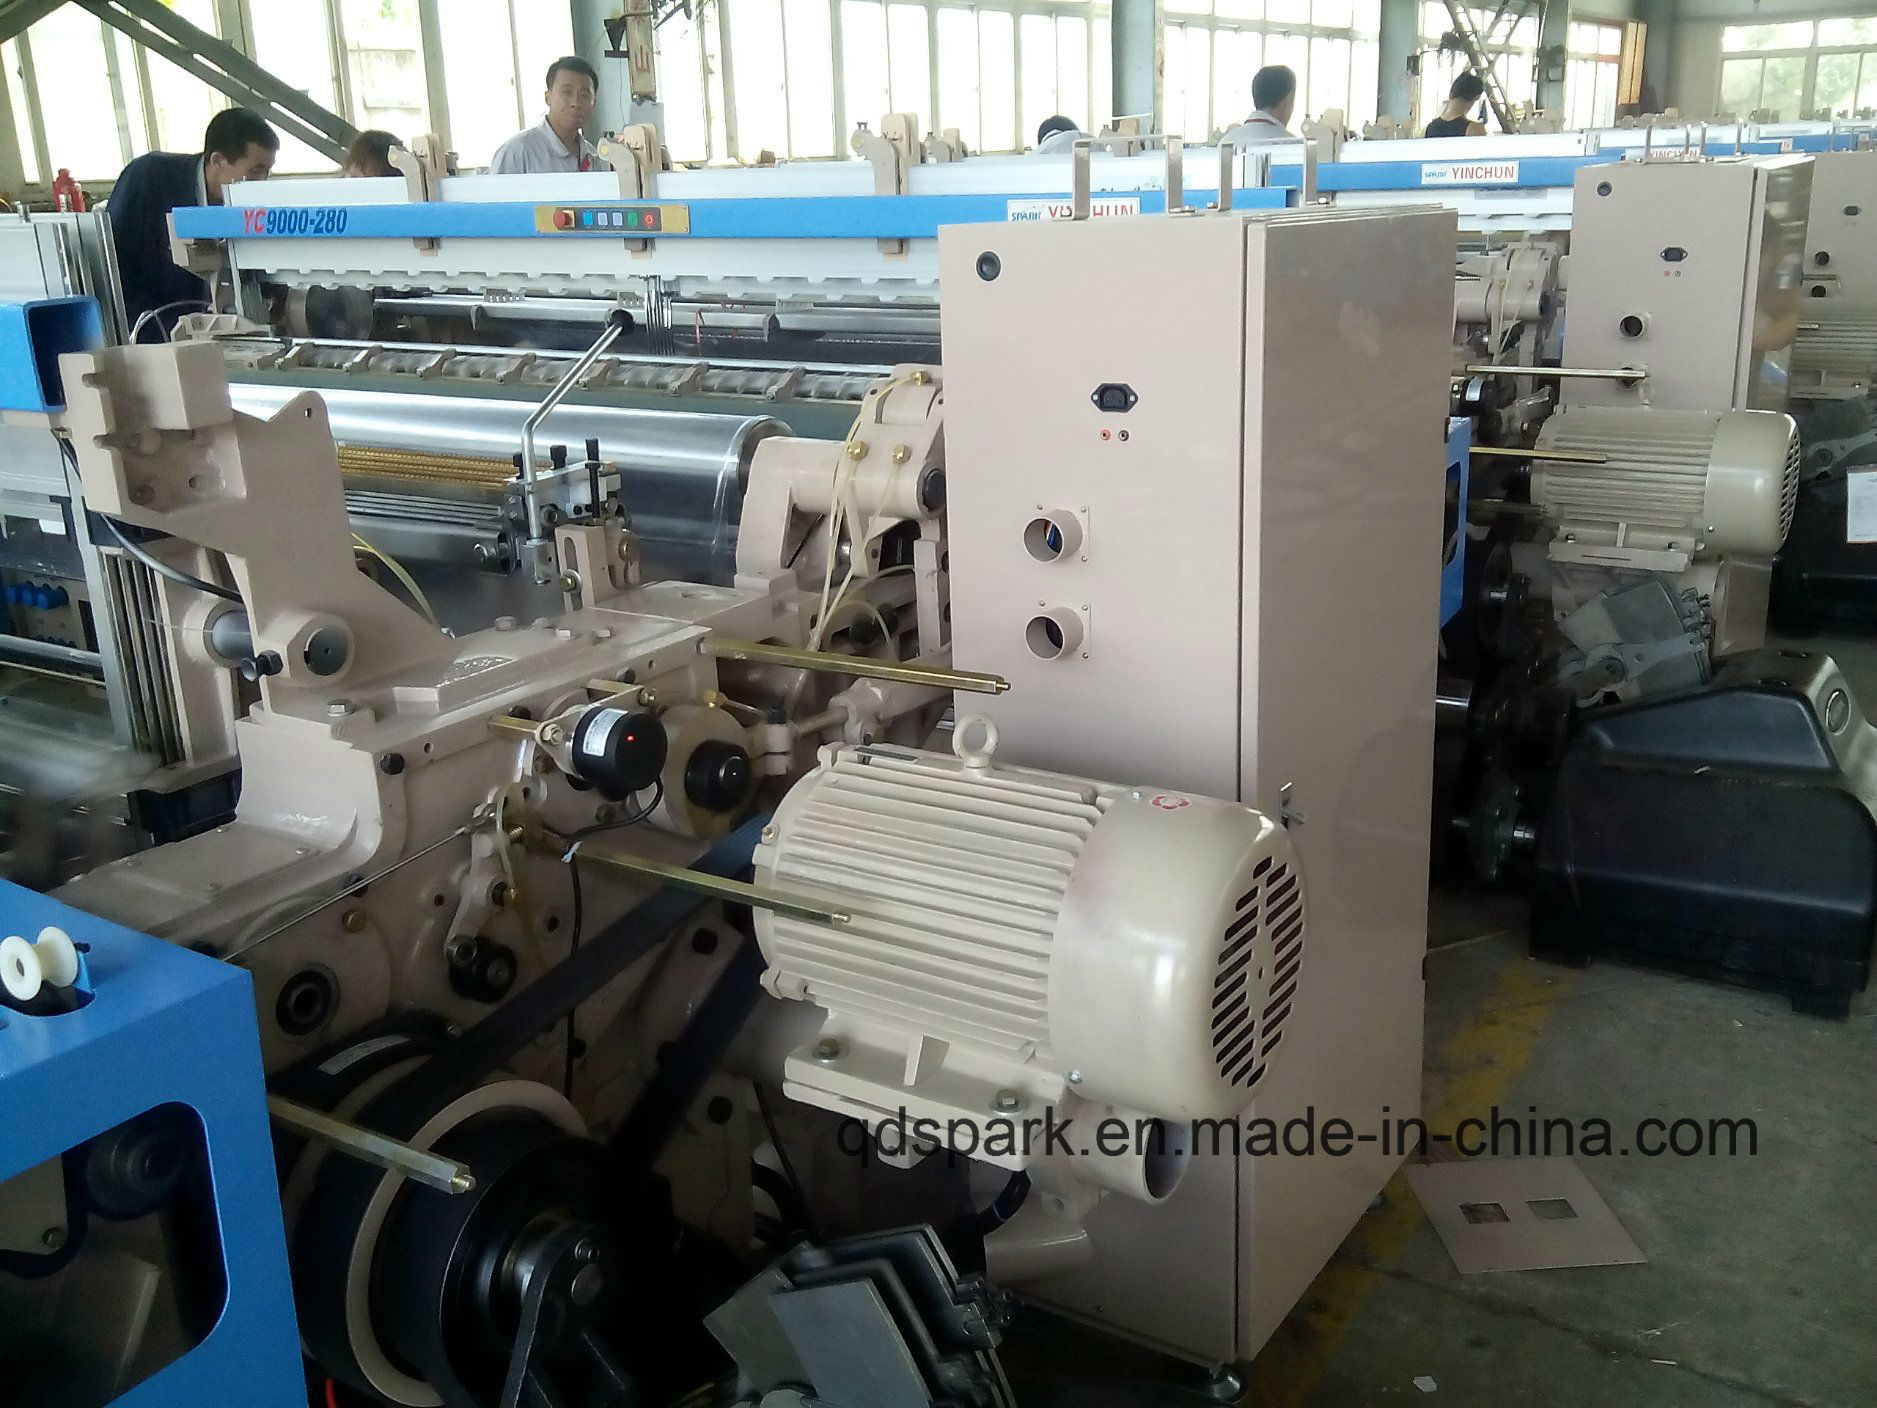 340cm High Speed Air Jet Weaving Machine